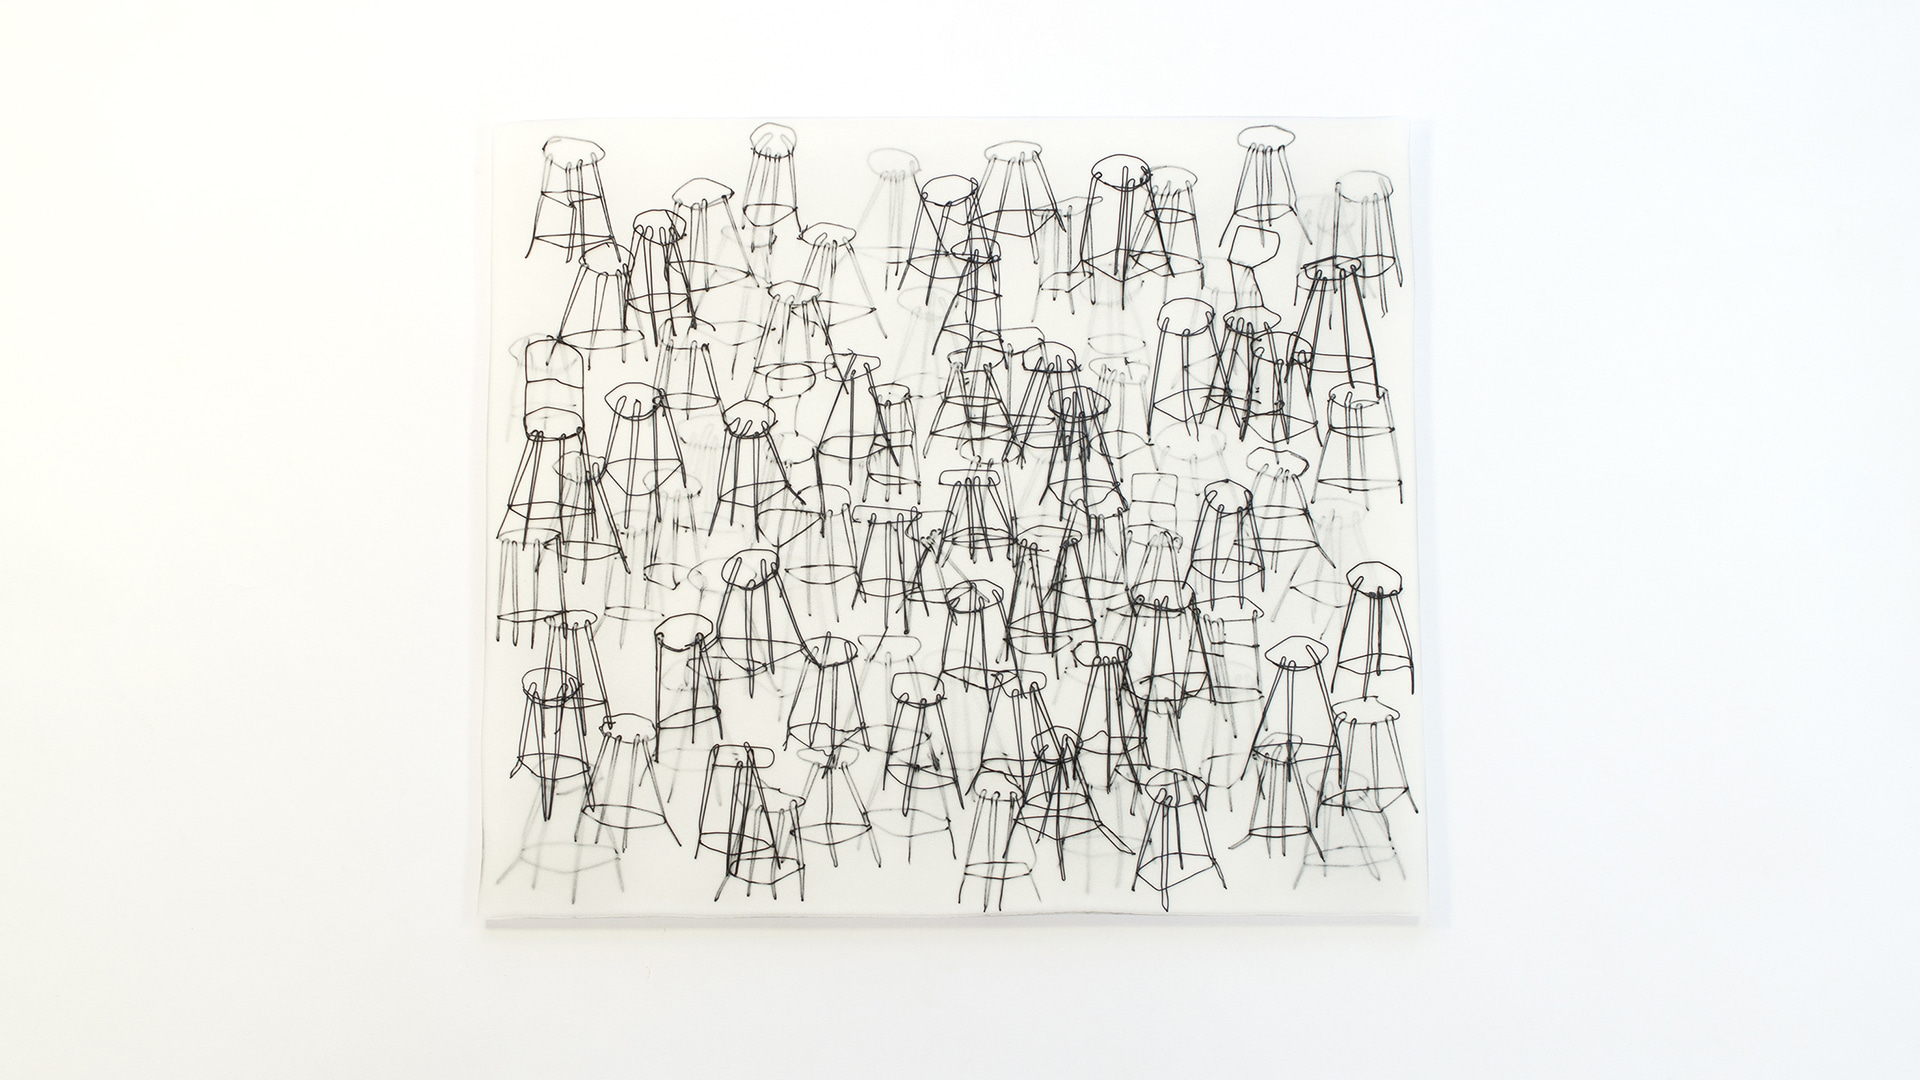 의자의 숲, 생각의 정원 : Forest of the stools, Garden of the thoughts